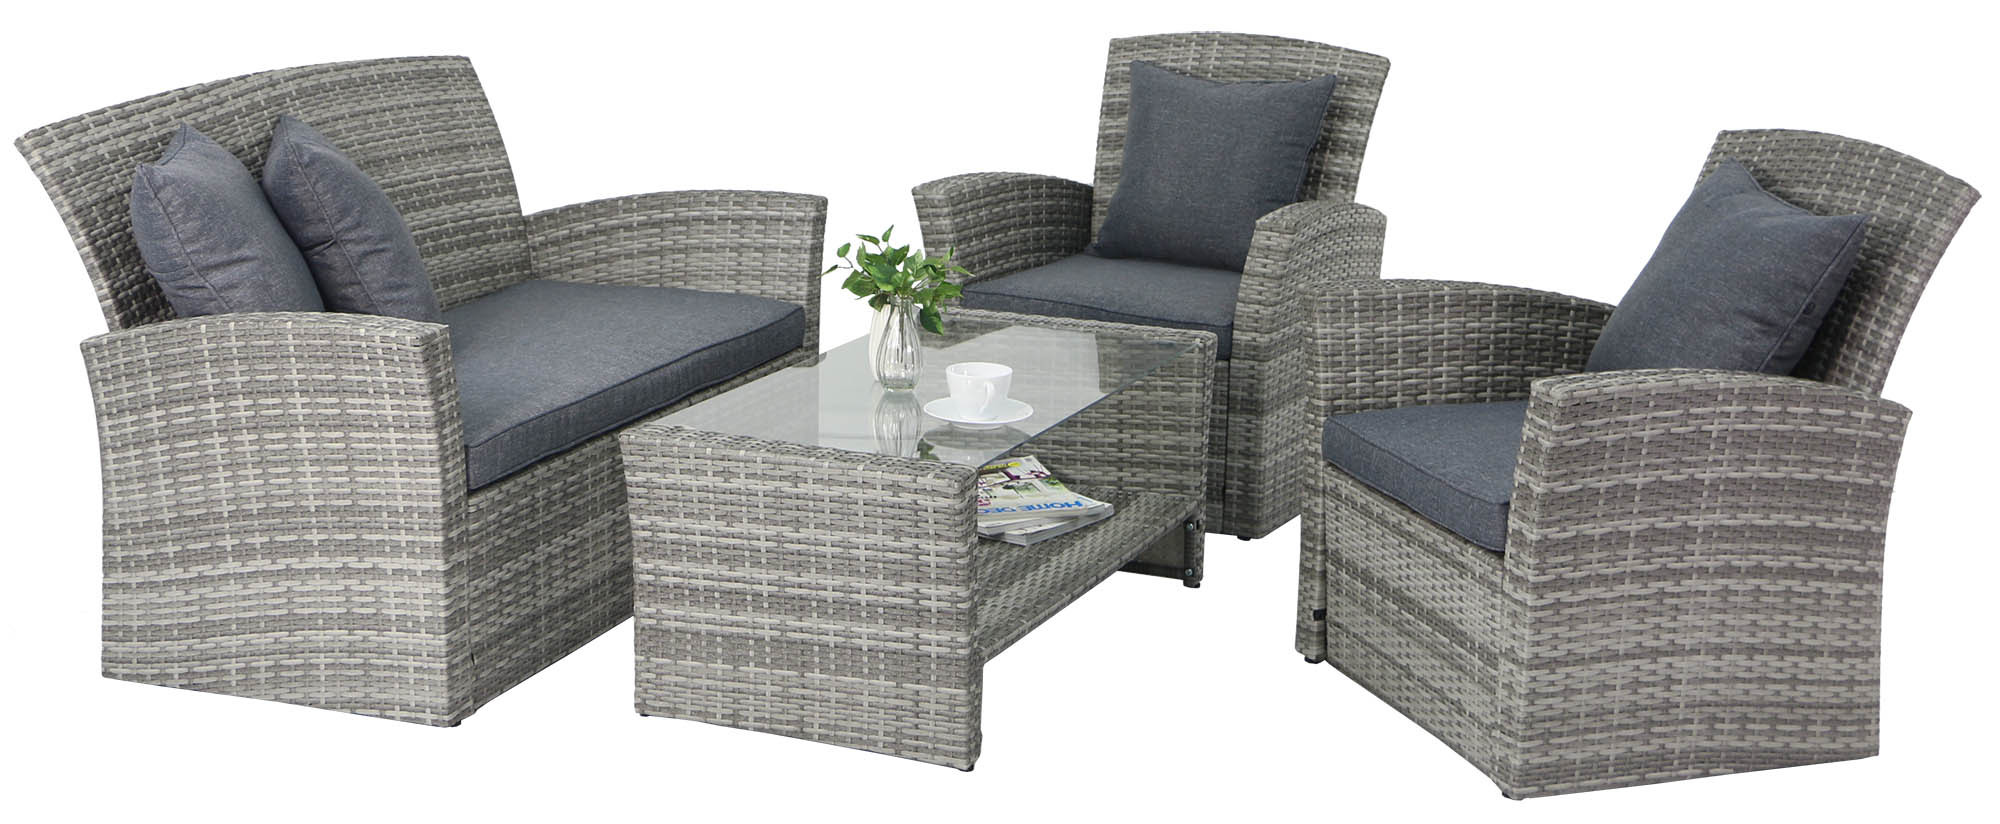 Beaumont Rattan Outdoor Sofa Set Grey All Sofas